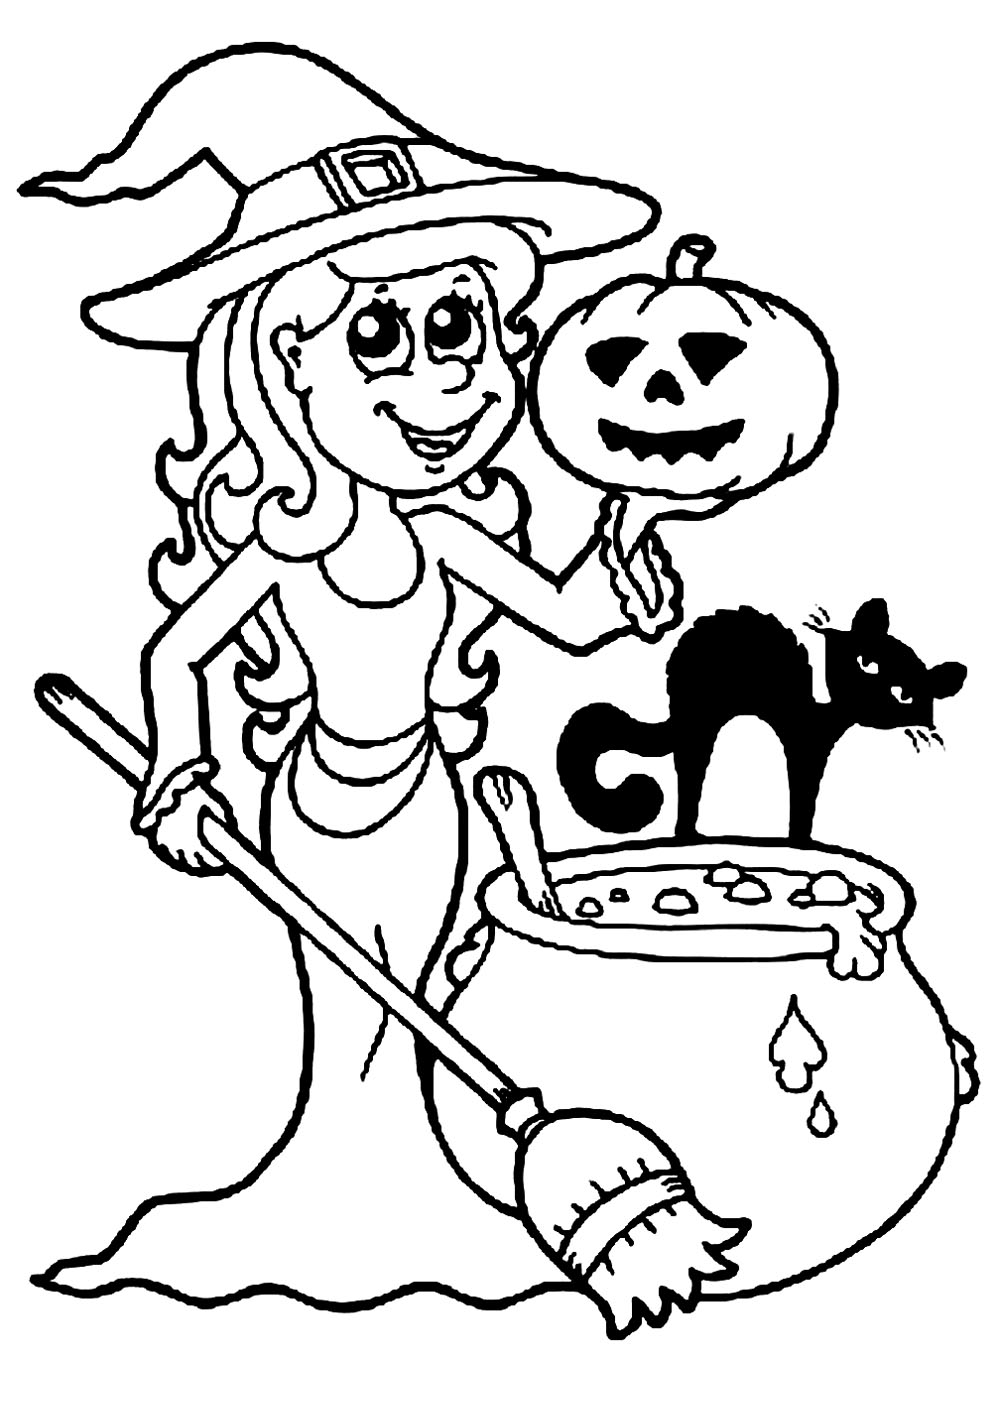 coloring pictures for halloween rookie saturday printable halloween coloring pages pictures halloween coloring for